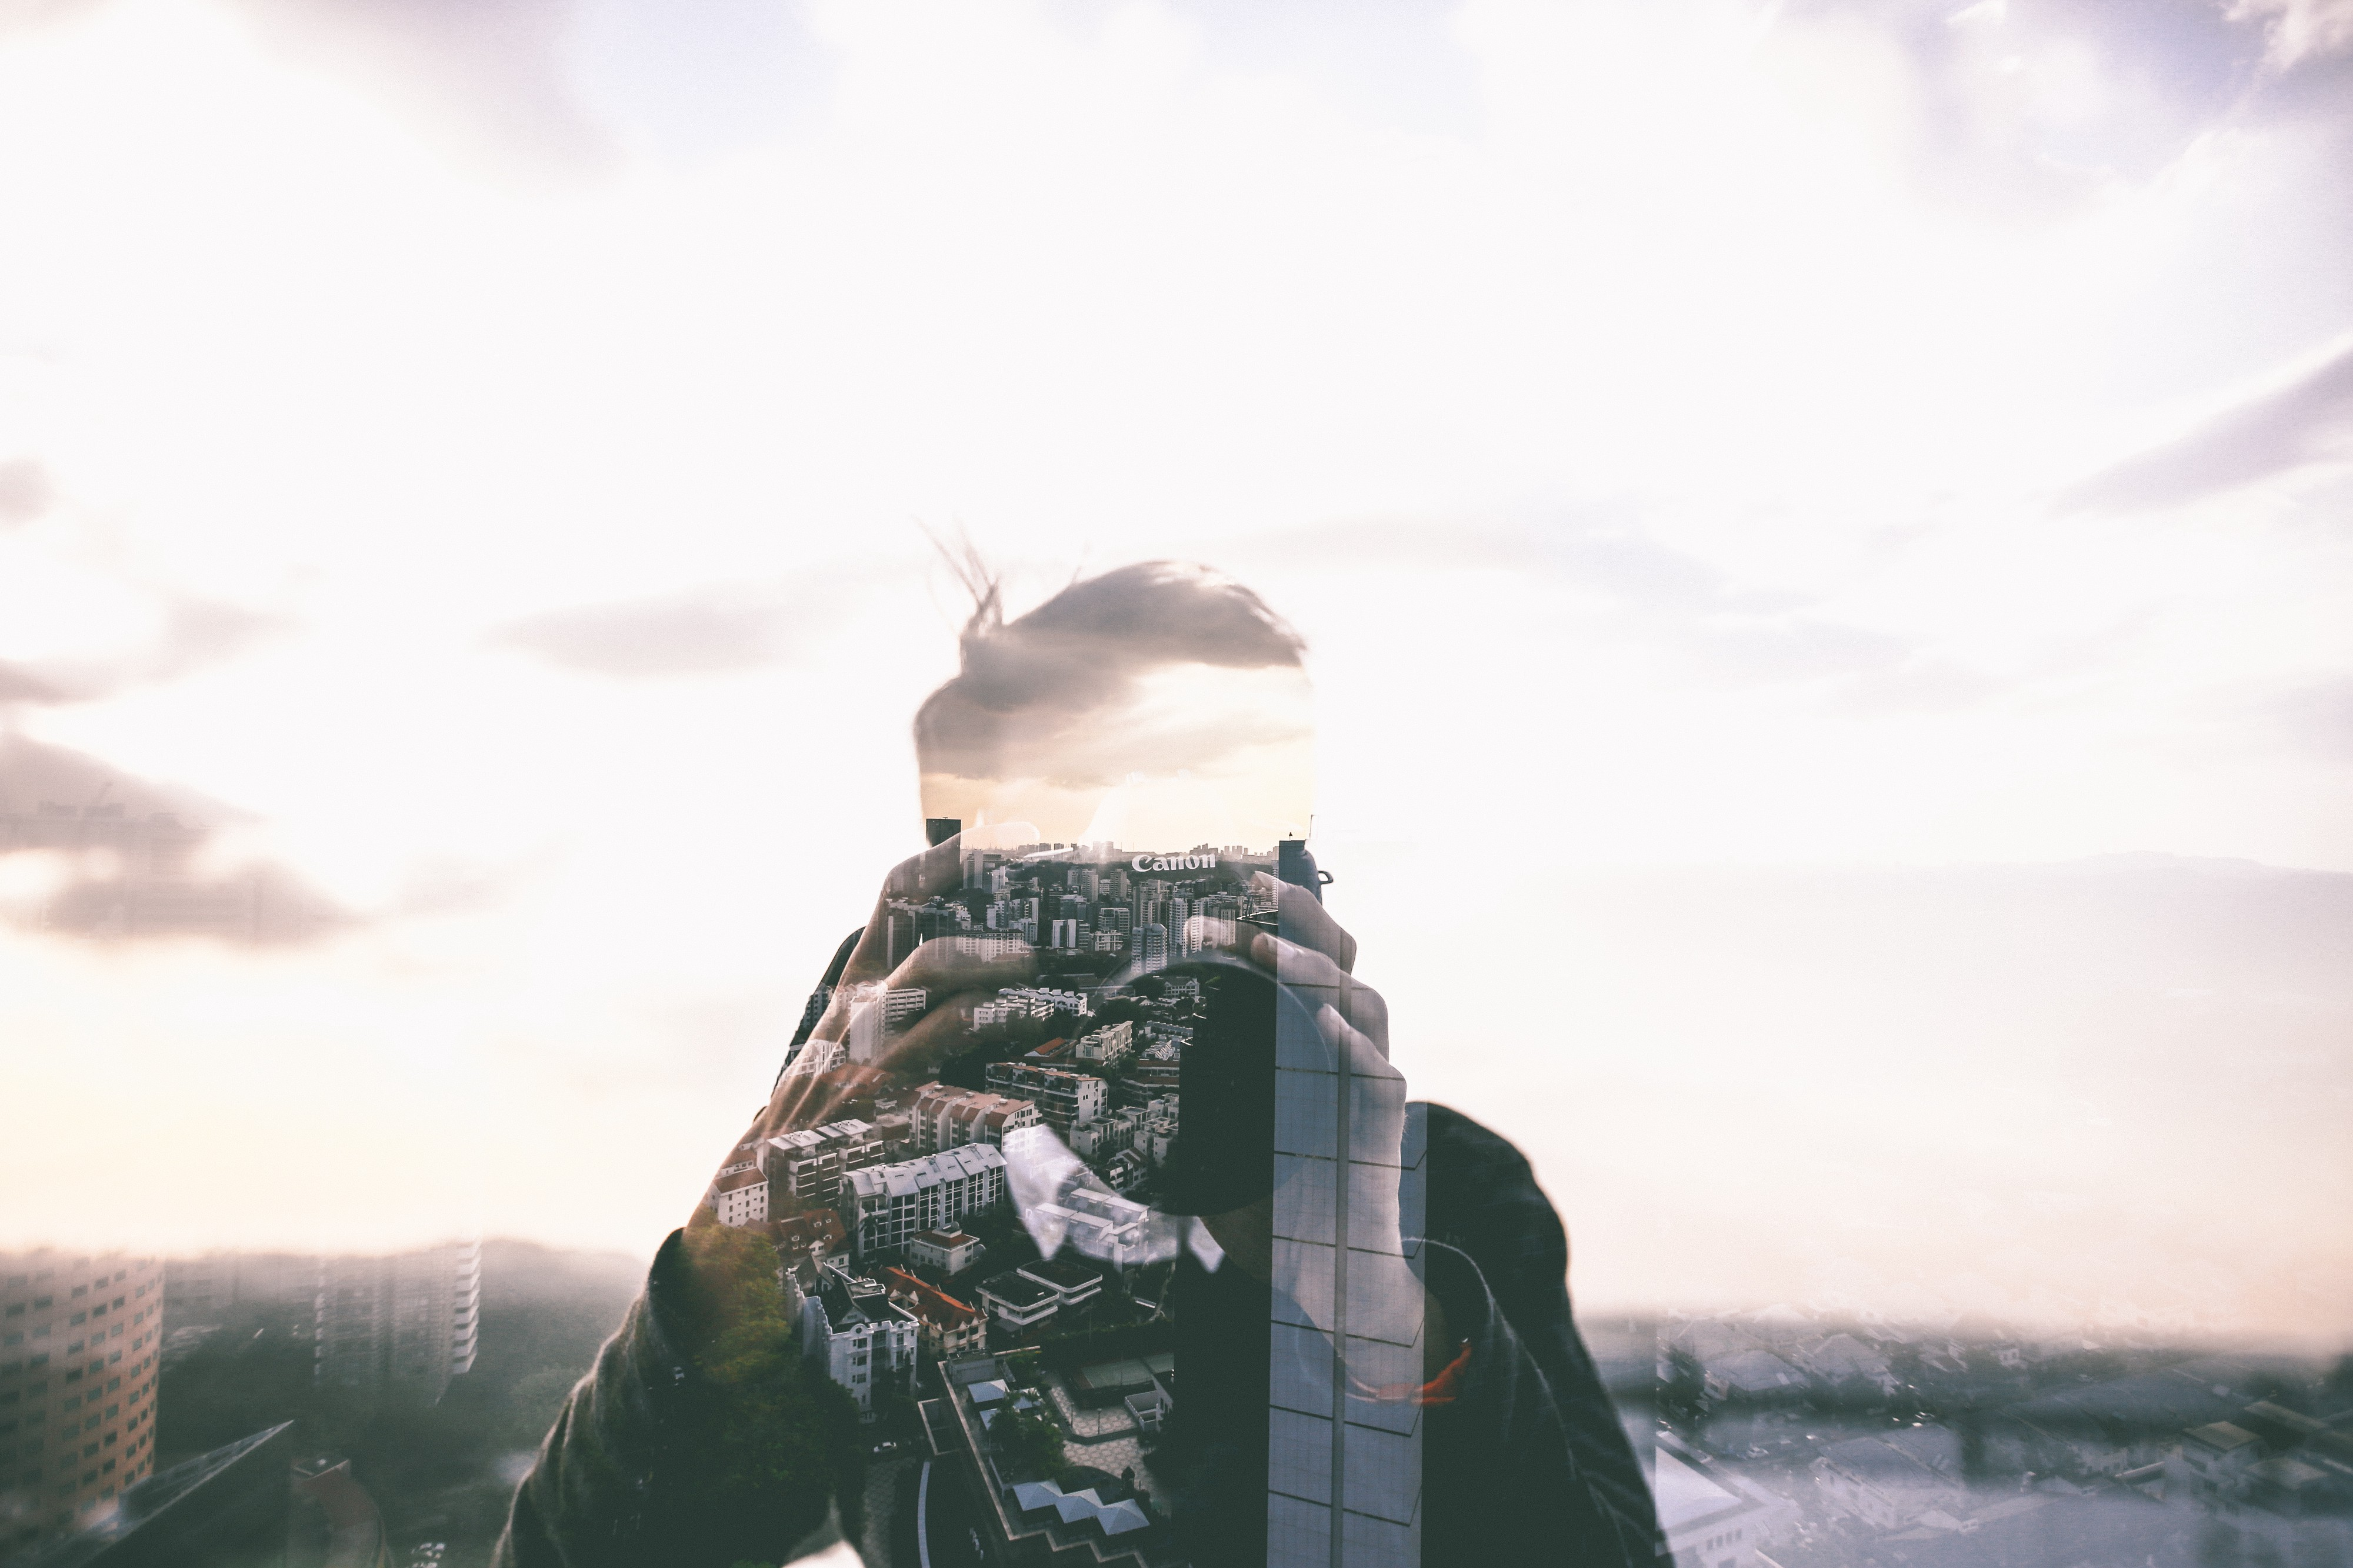 All These Flaws You See In Yourself Aren't Real | by Niklas Göke | Personal  Growth | Medium